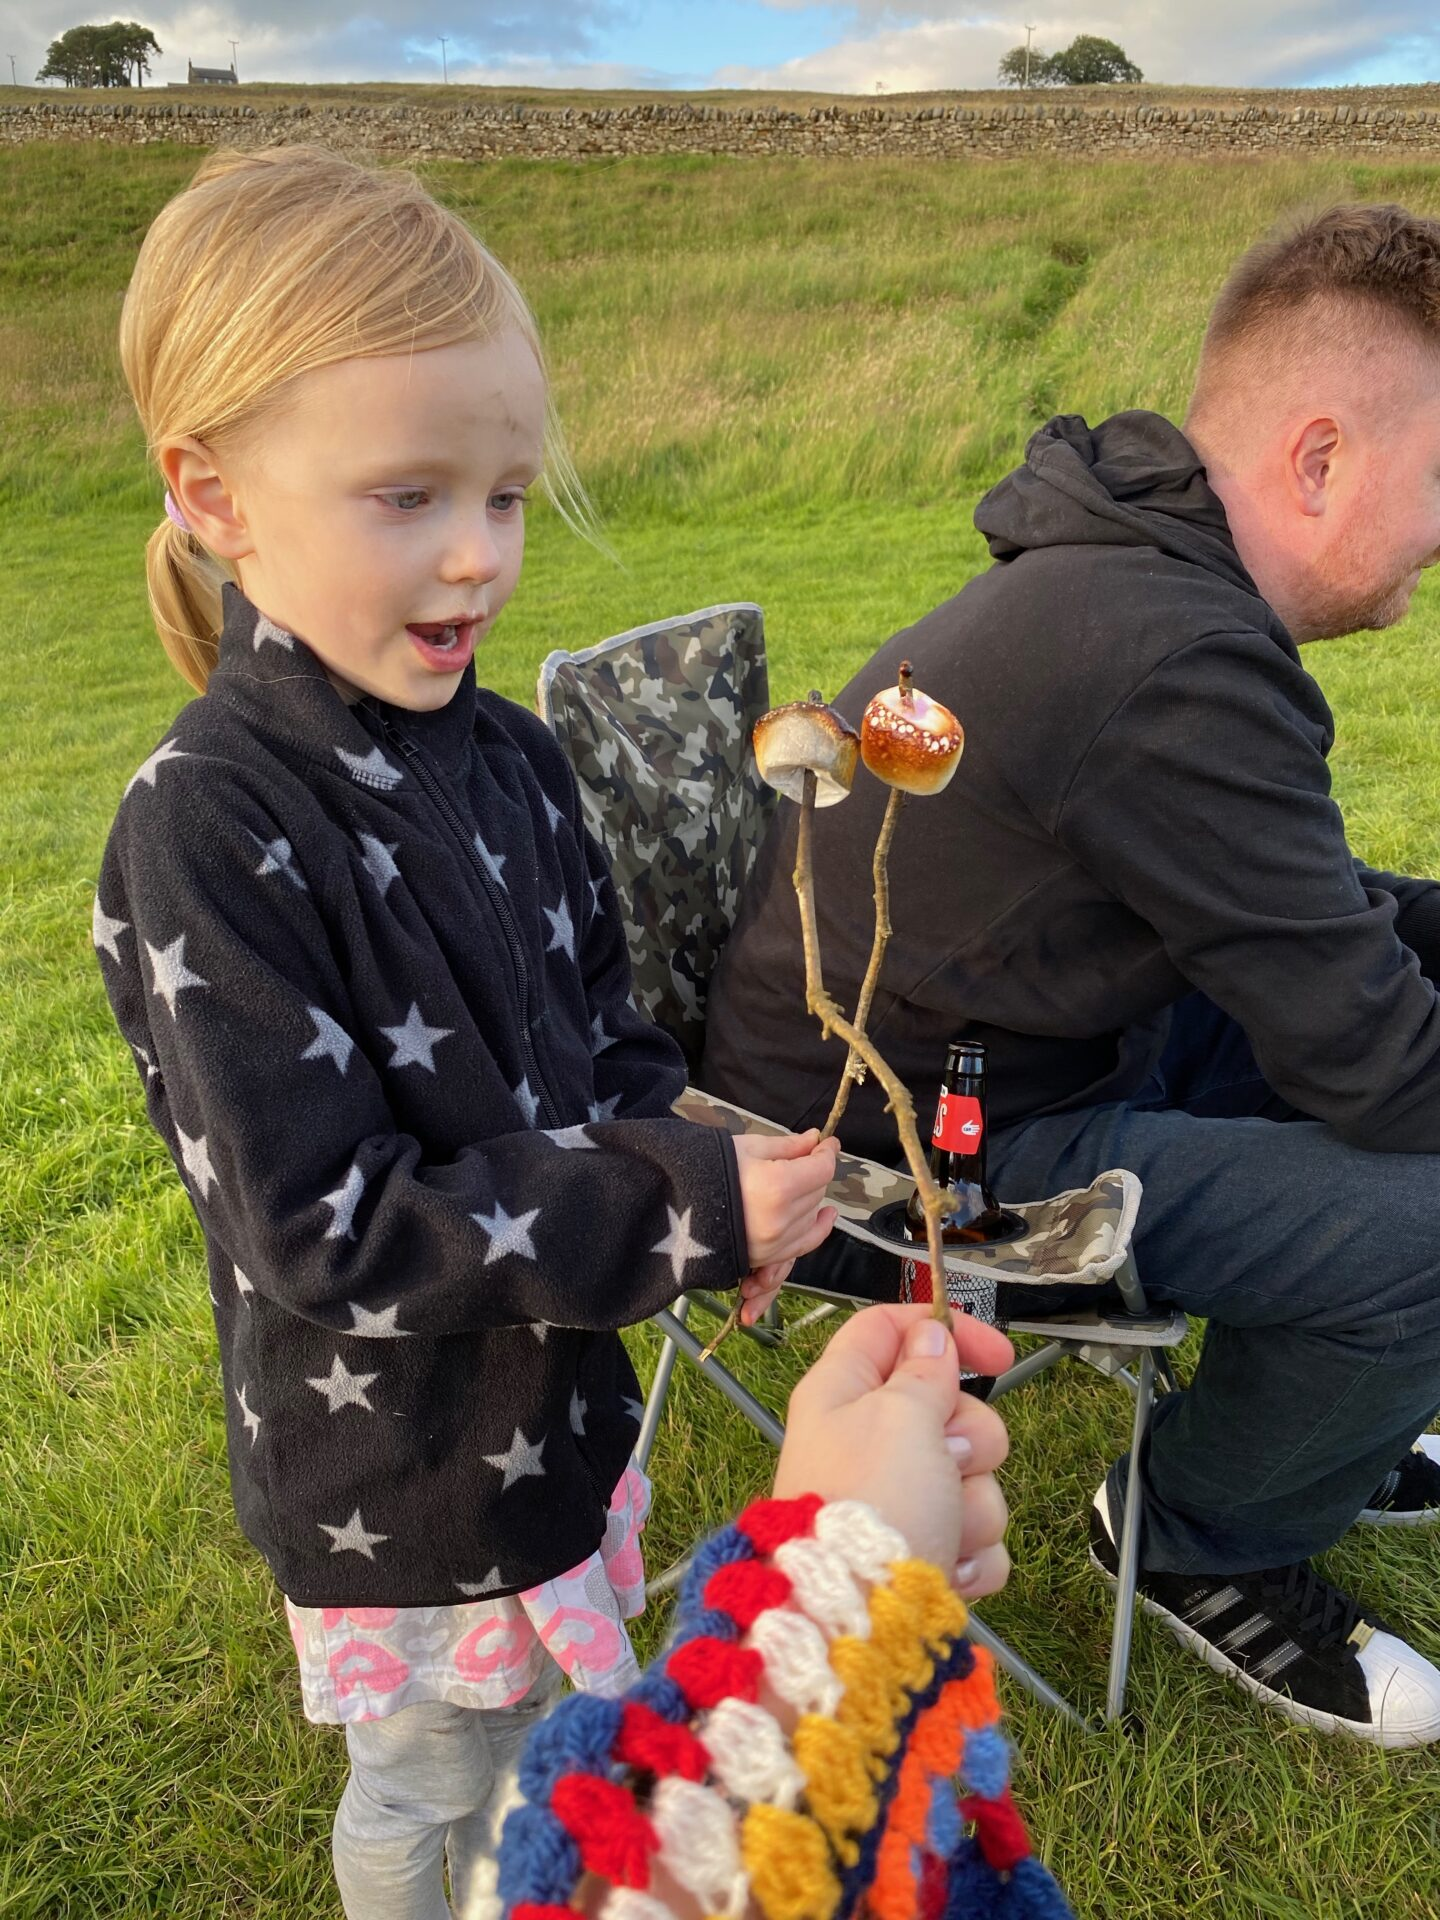 Little girl with blonde hair holding sticks with toasted marshmallows